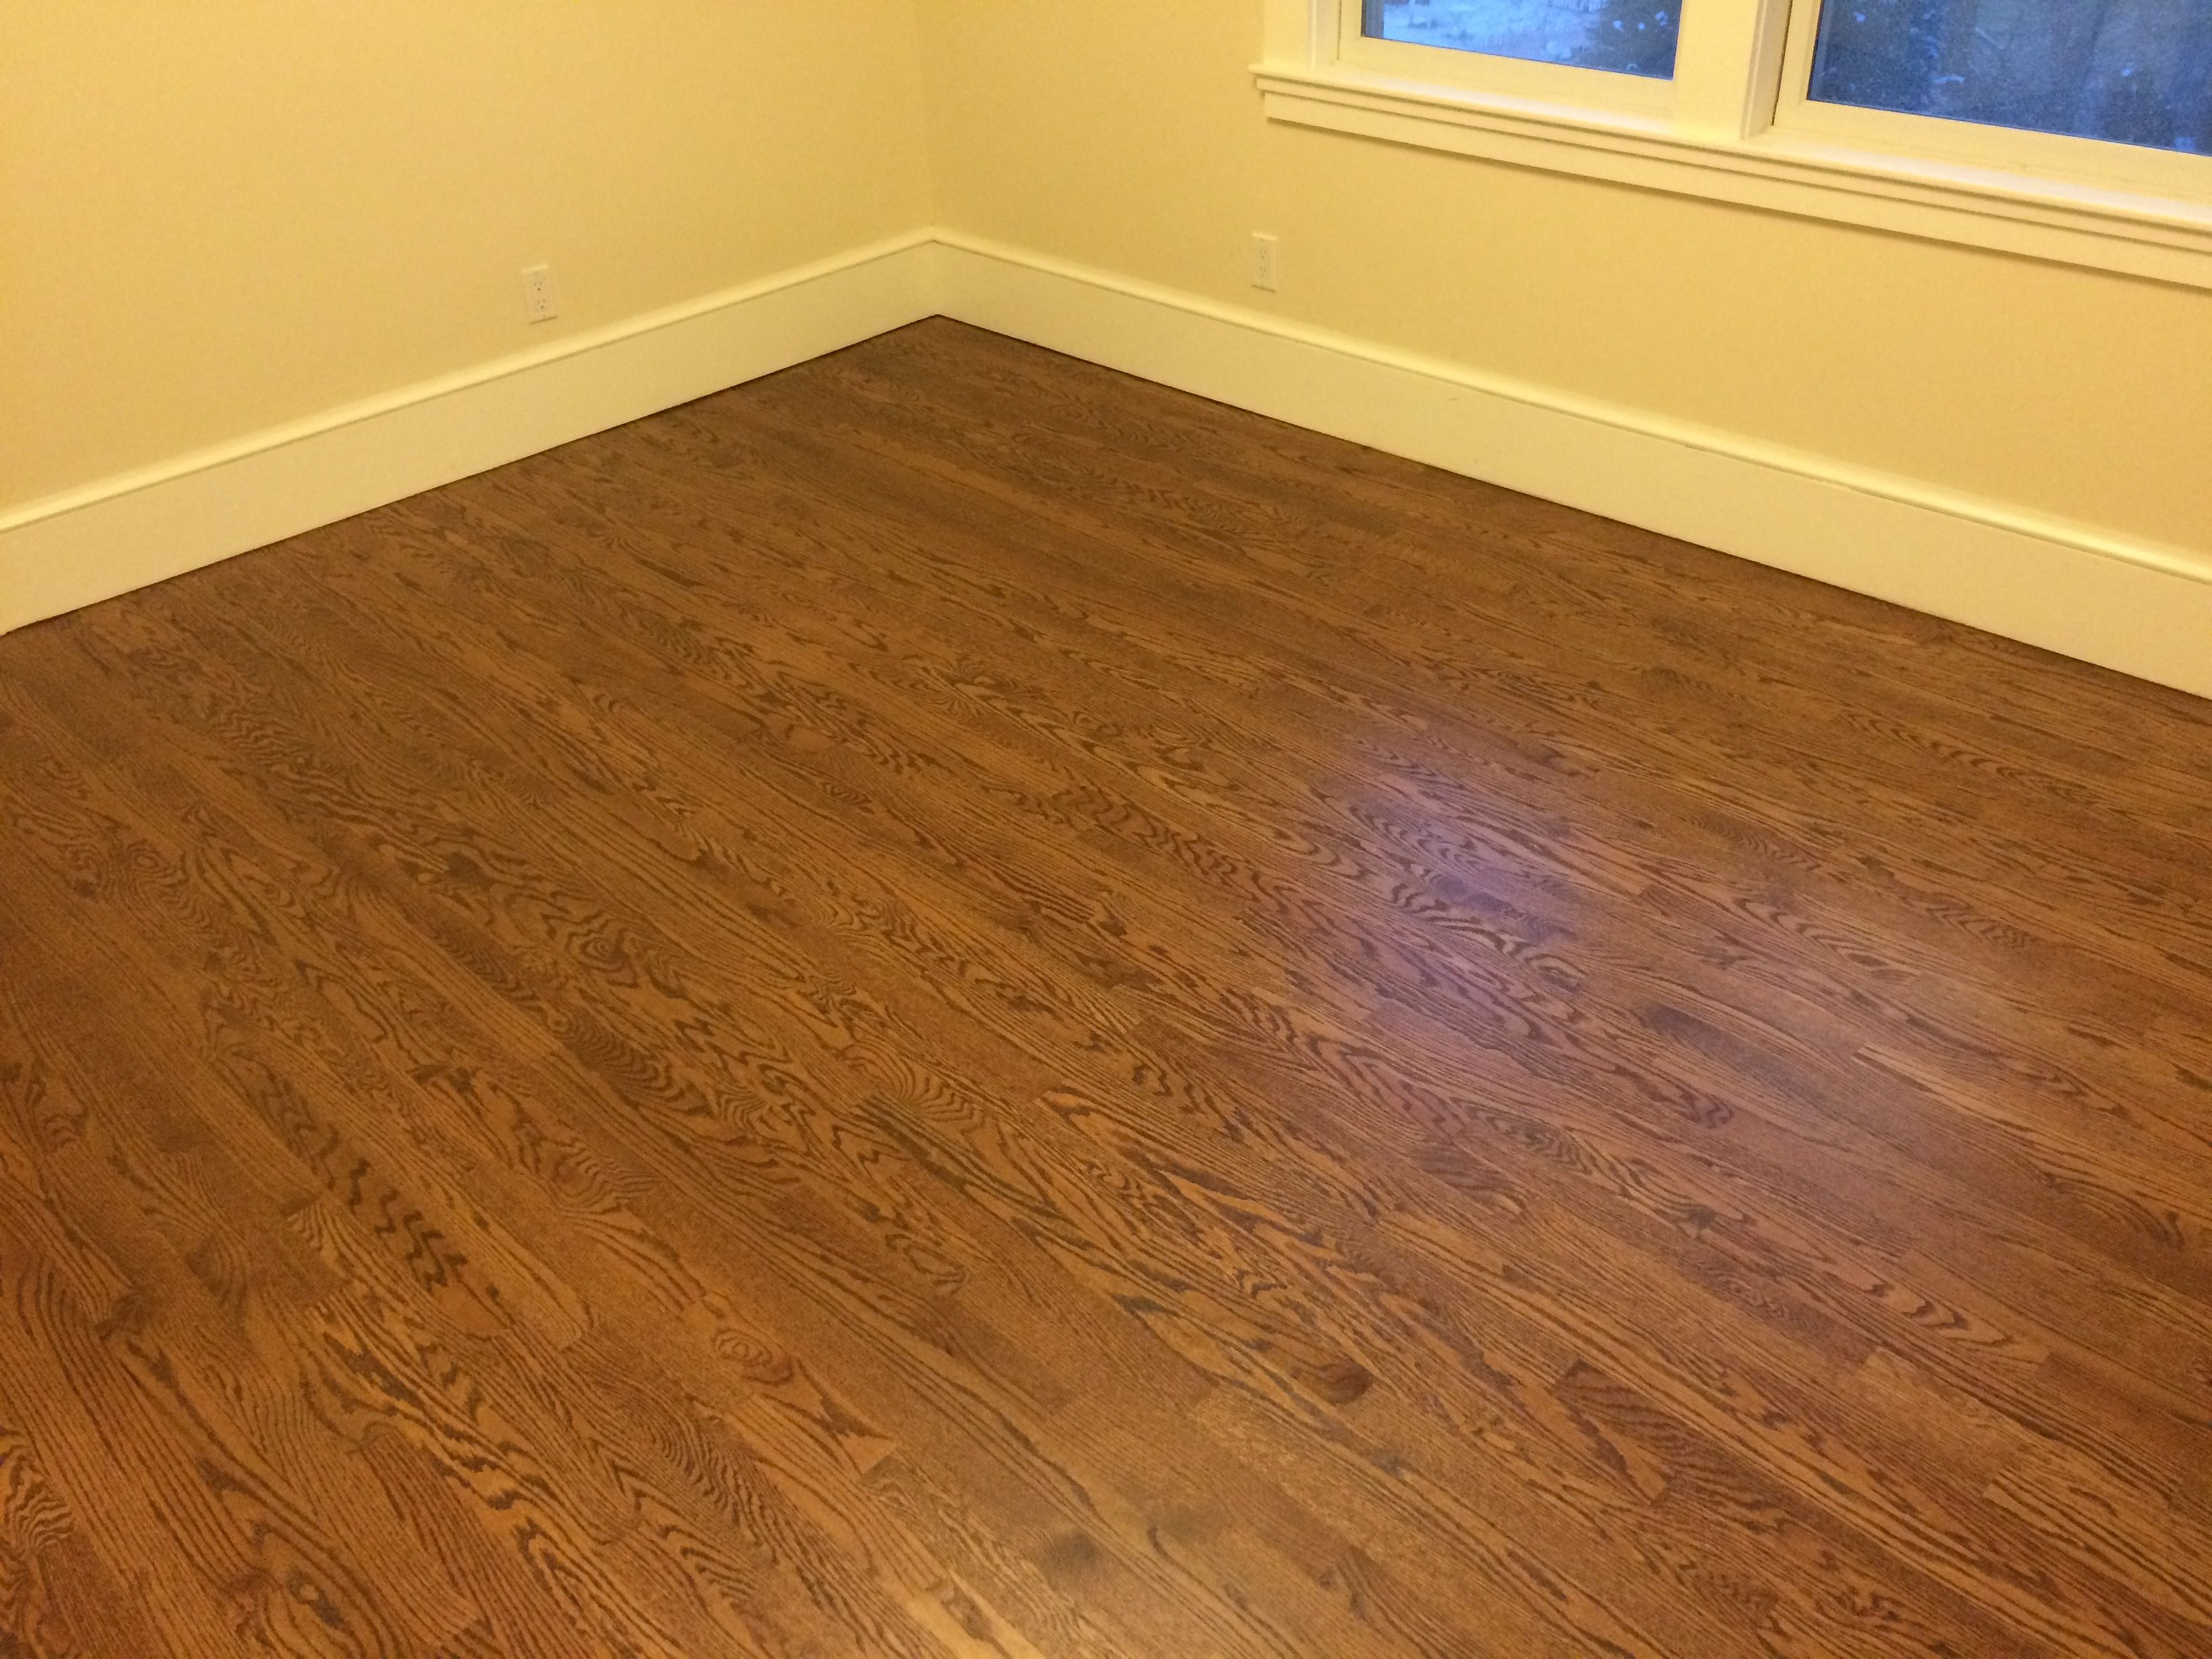 Minwax Special Walnut Over Red Oak Hardwood Floors Topped